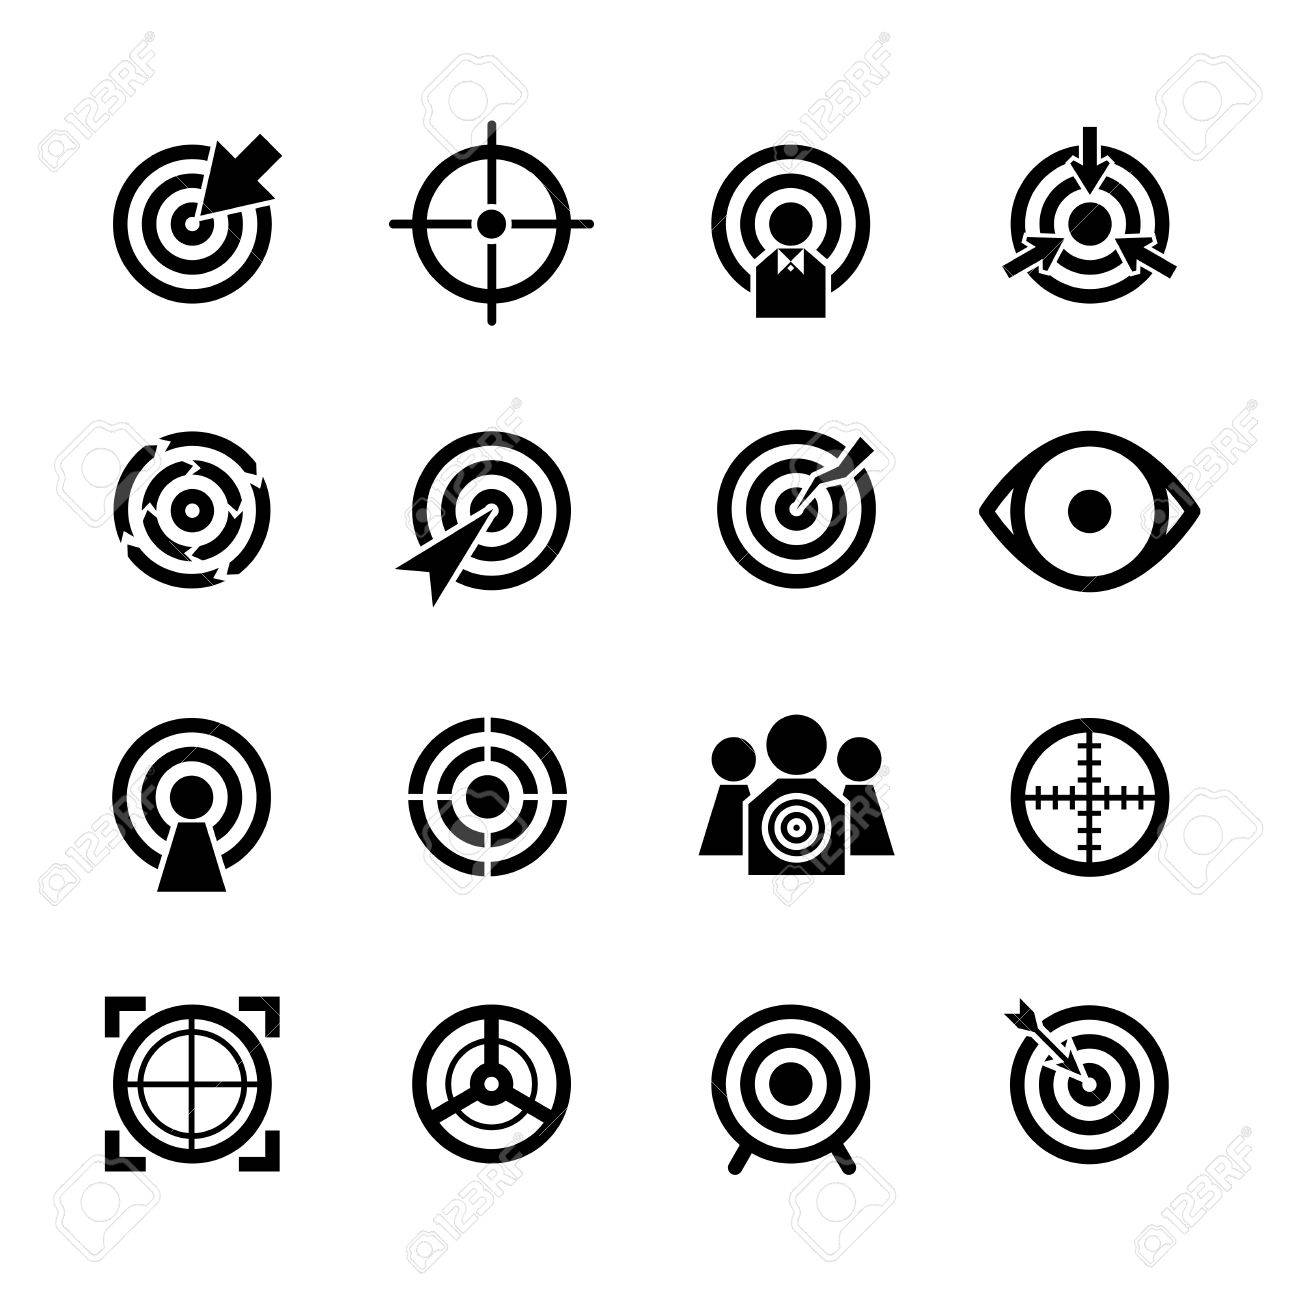 Target vector icons set. Business or sport aim, aiming goal, focus success illustration - 51644161